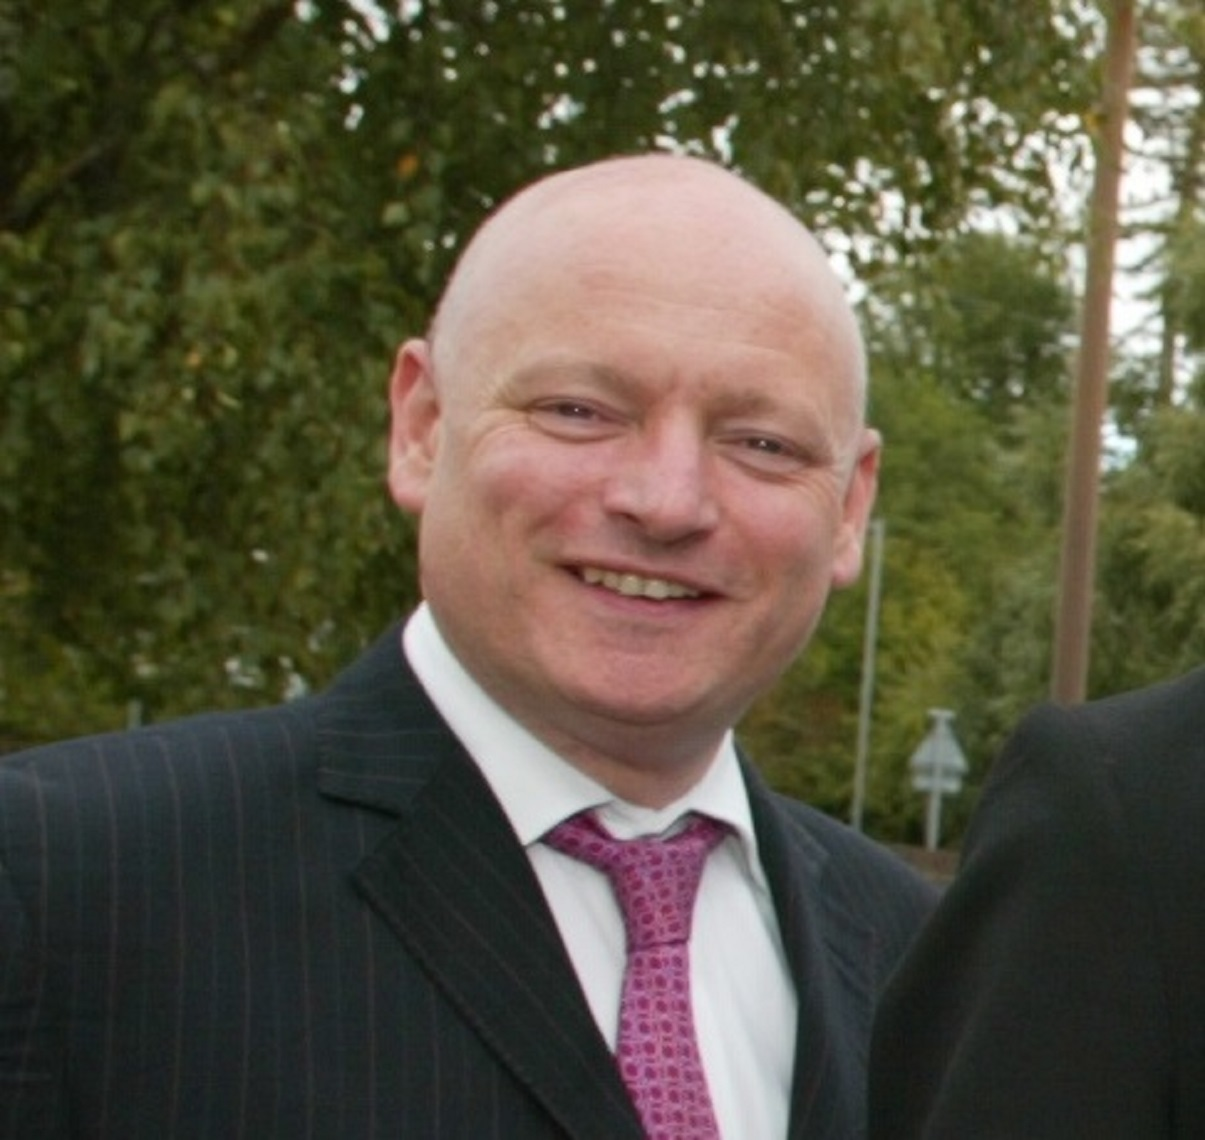 Chesham Grammar School headmaster Philip Wayne